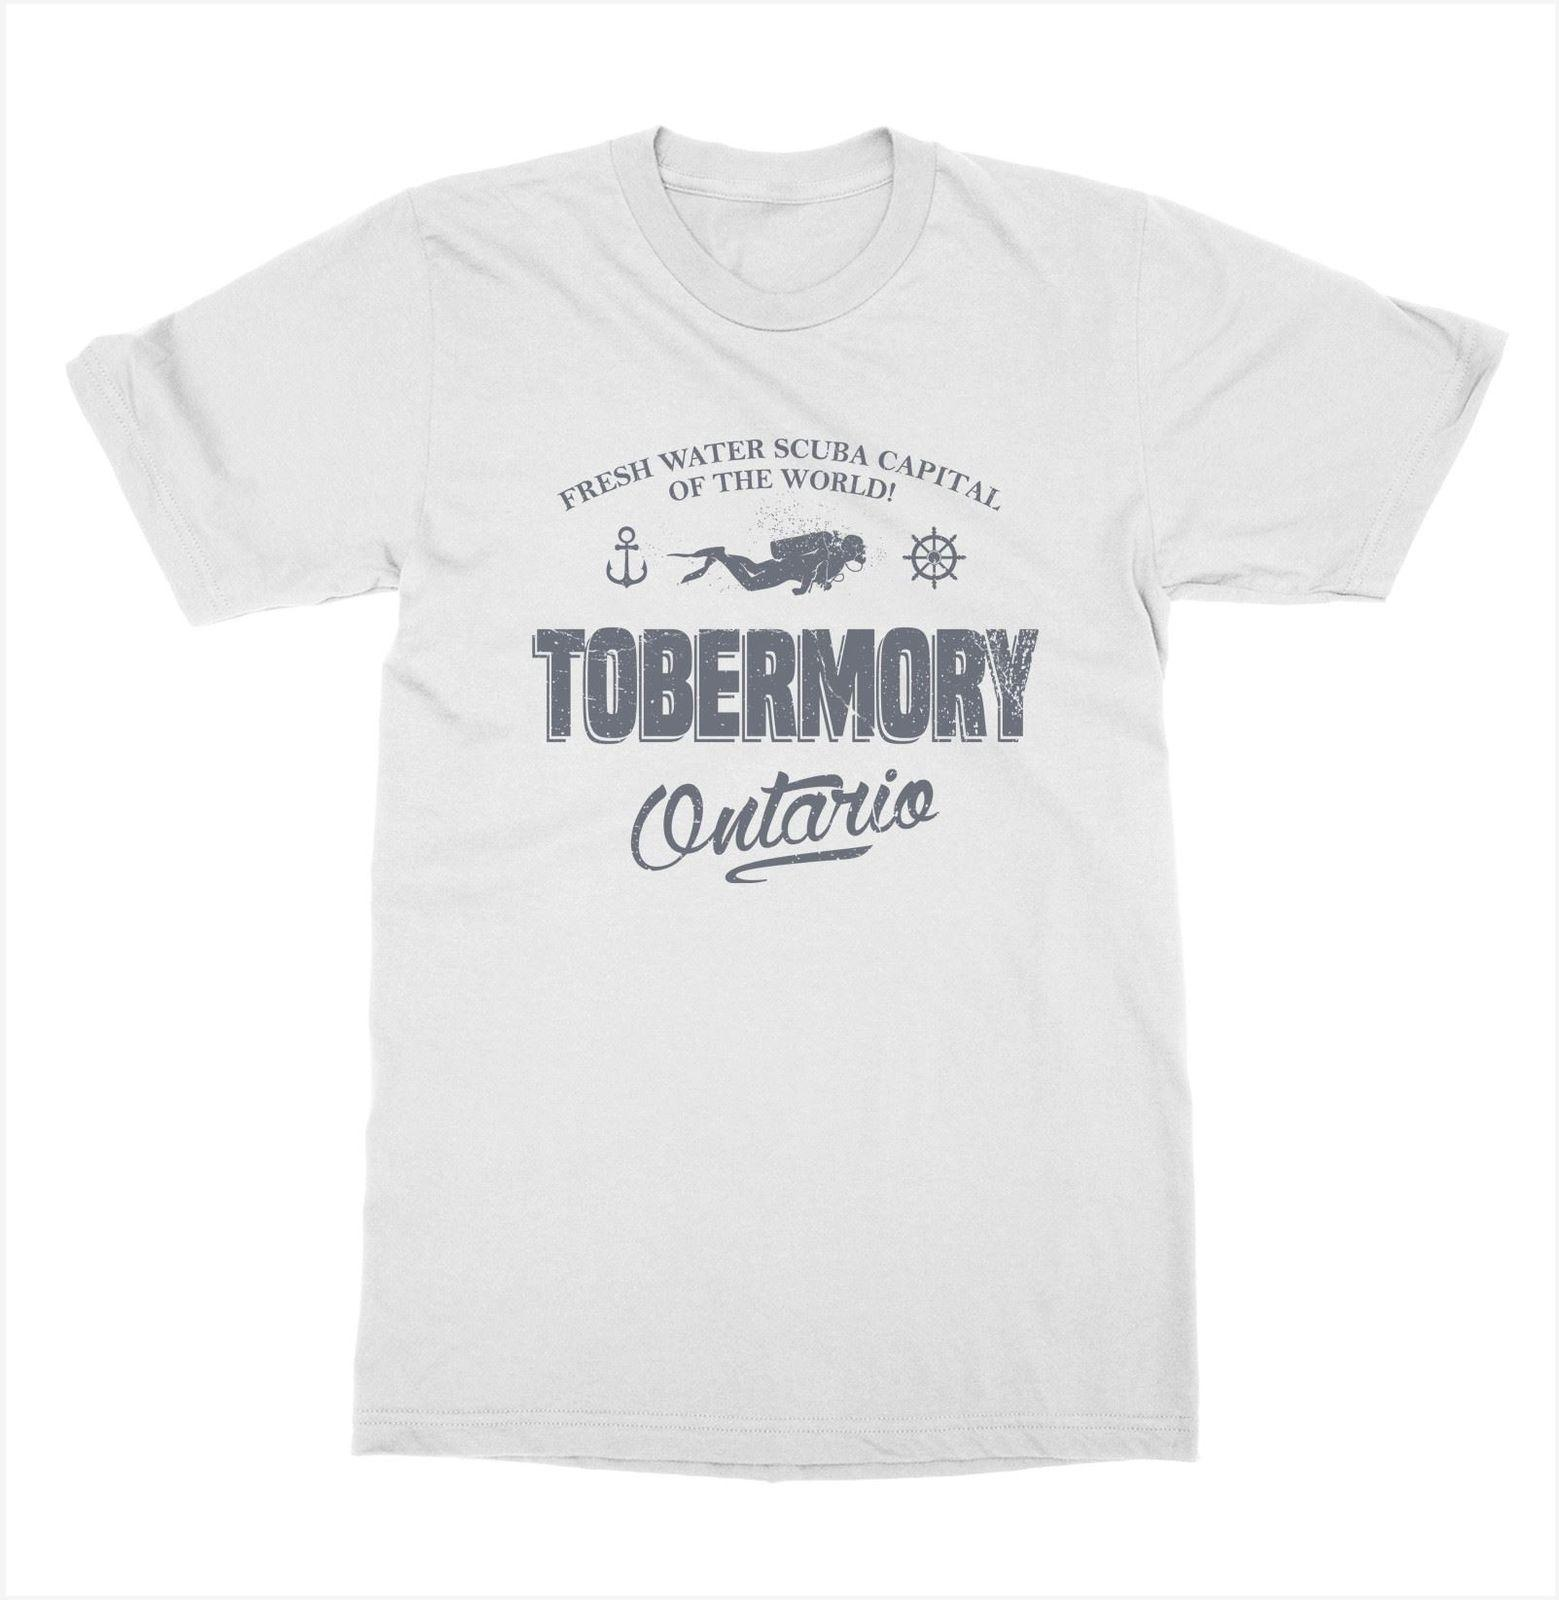 5694abb3 2018 New Men's Tobermory Ontario T Shirt Cottage Cabin Canada Vacation Camp  Outdoorer Lodge Tee Shirt